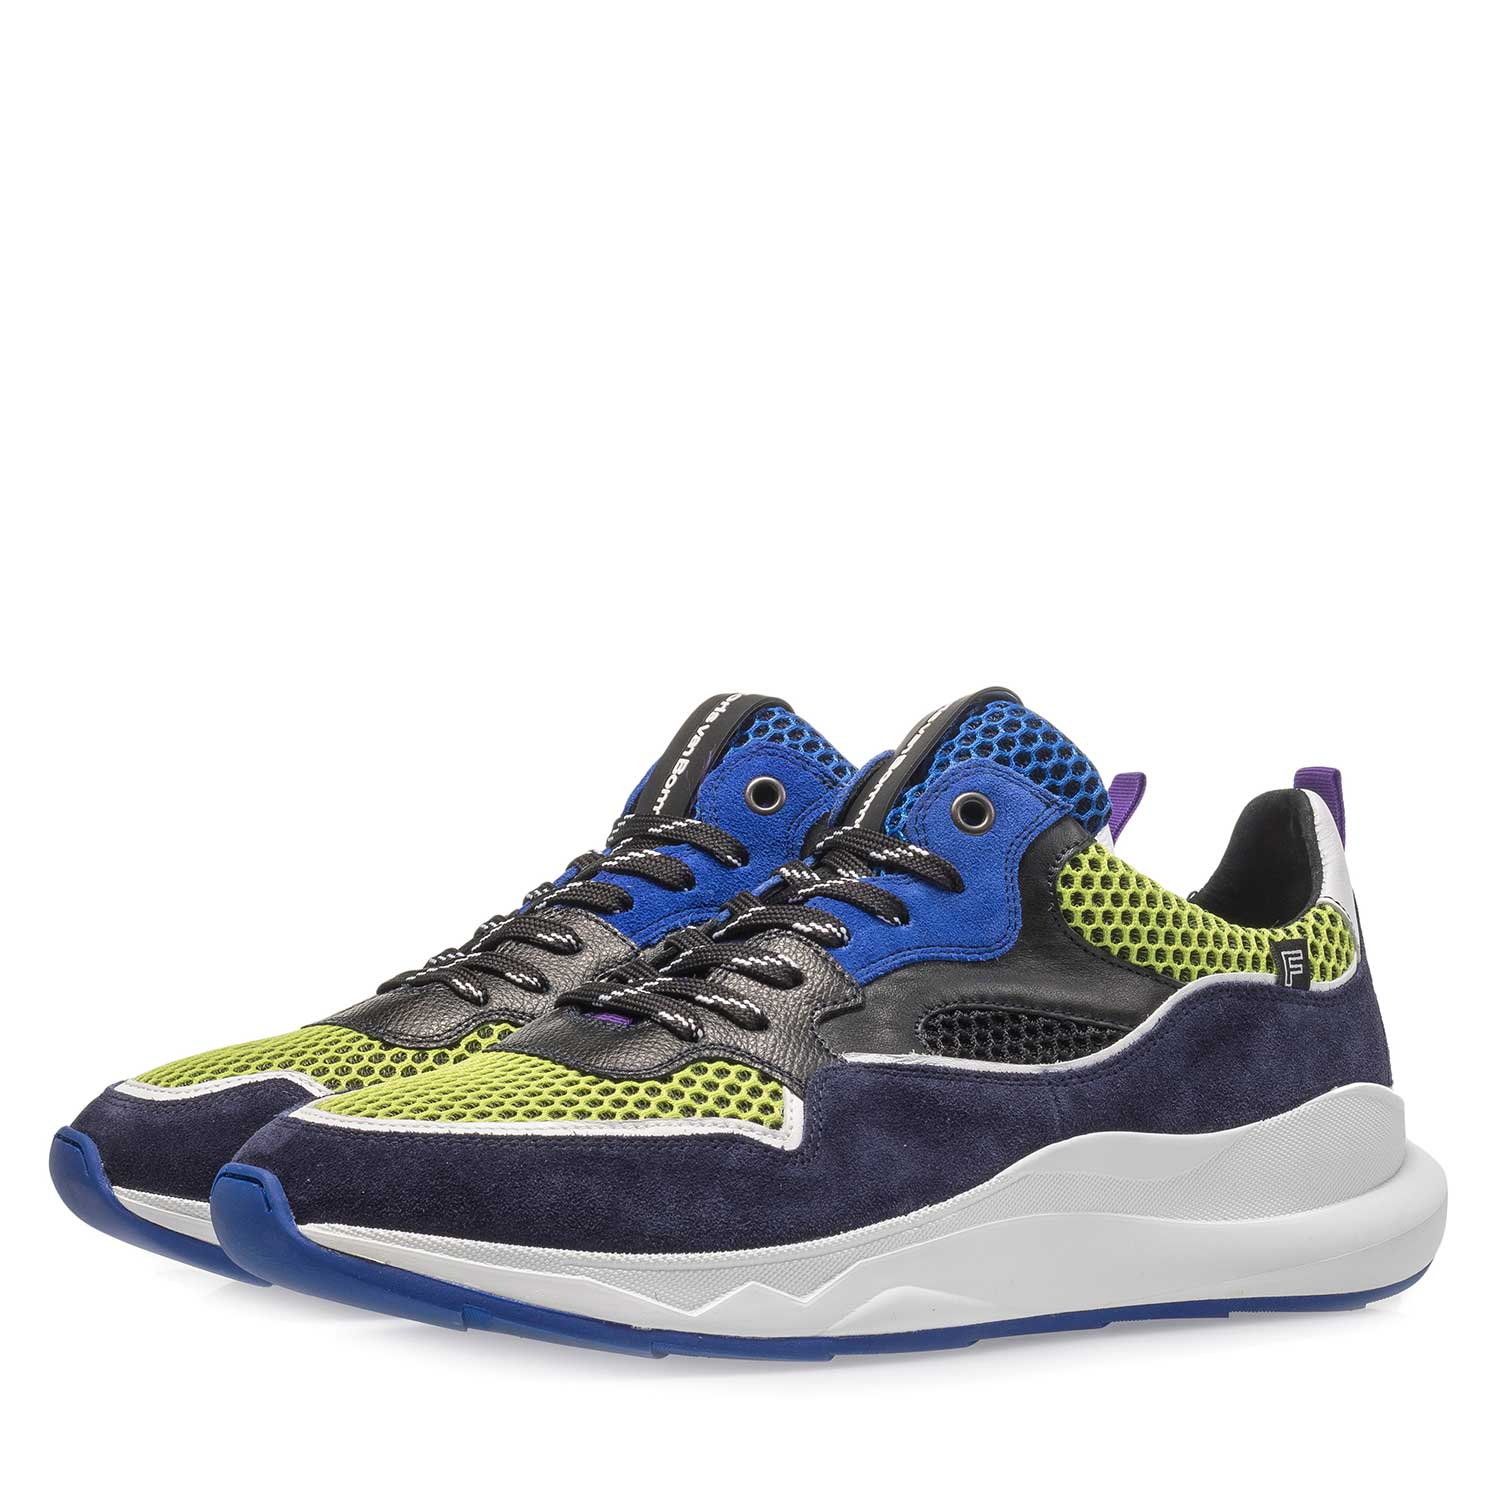 16269/06 - Dark blue and multi-coloured suede leather sneaker